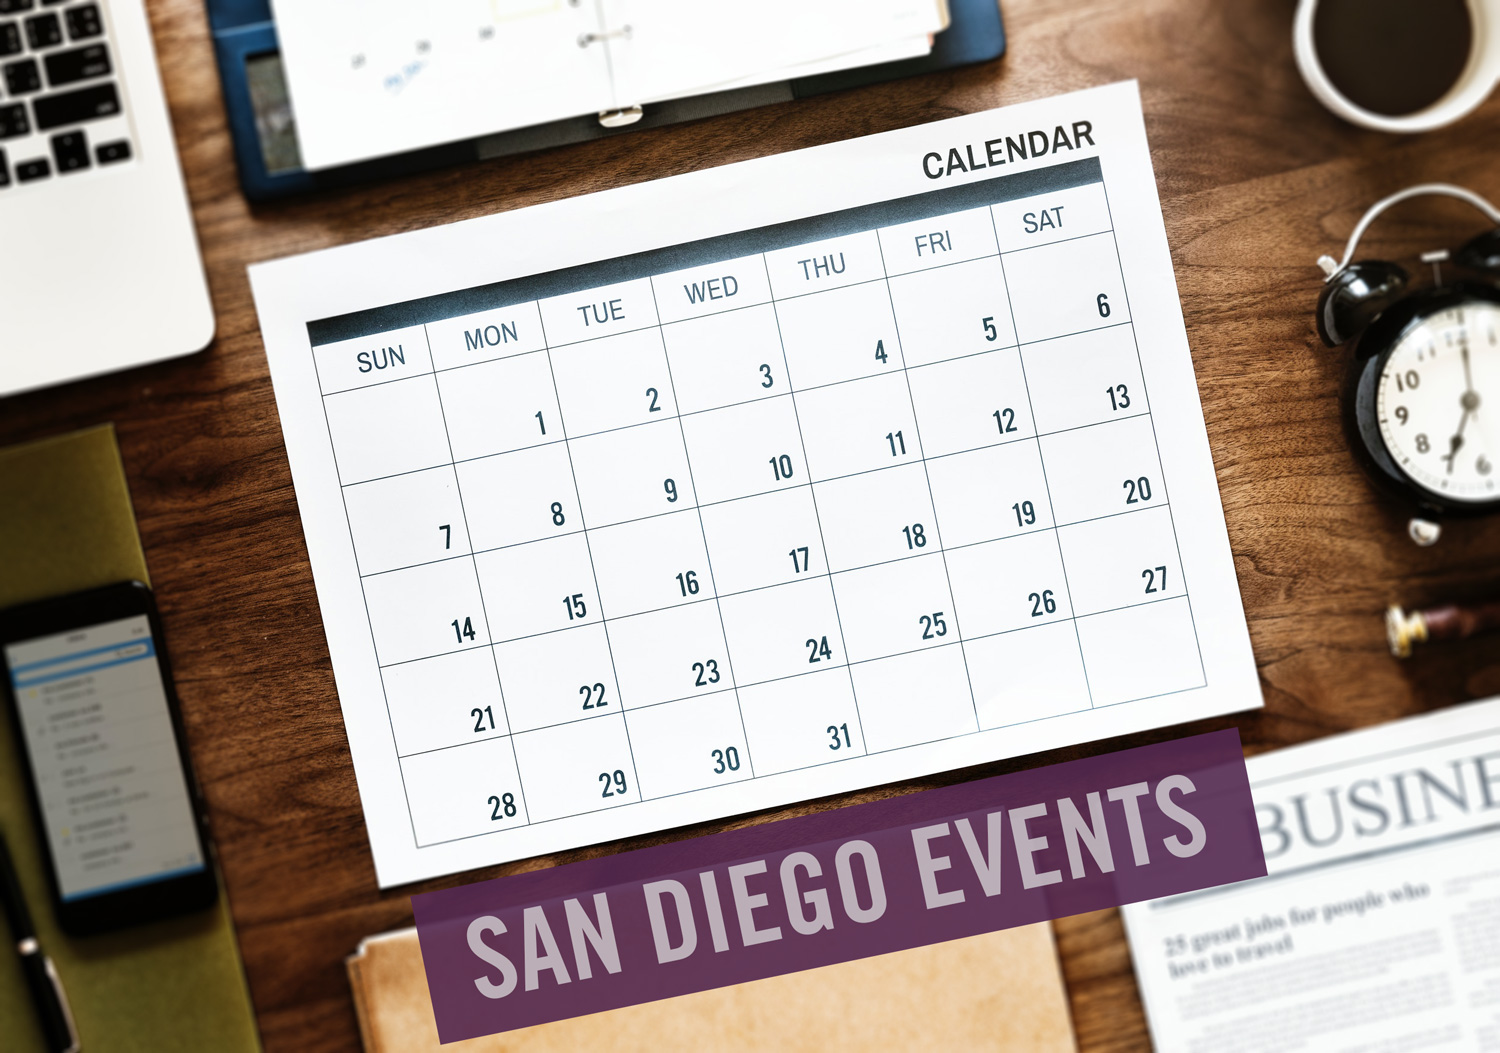 San Diego Calendar Of Events 2019 San Diego County Calendar of Events for February 2019   One